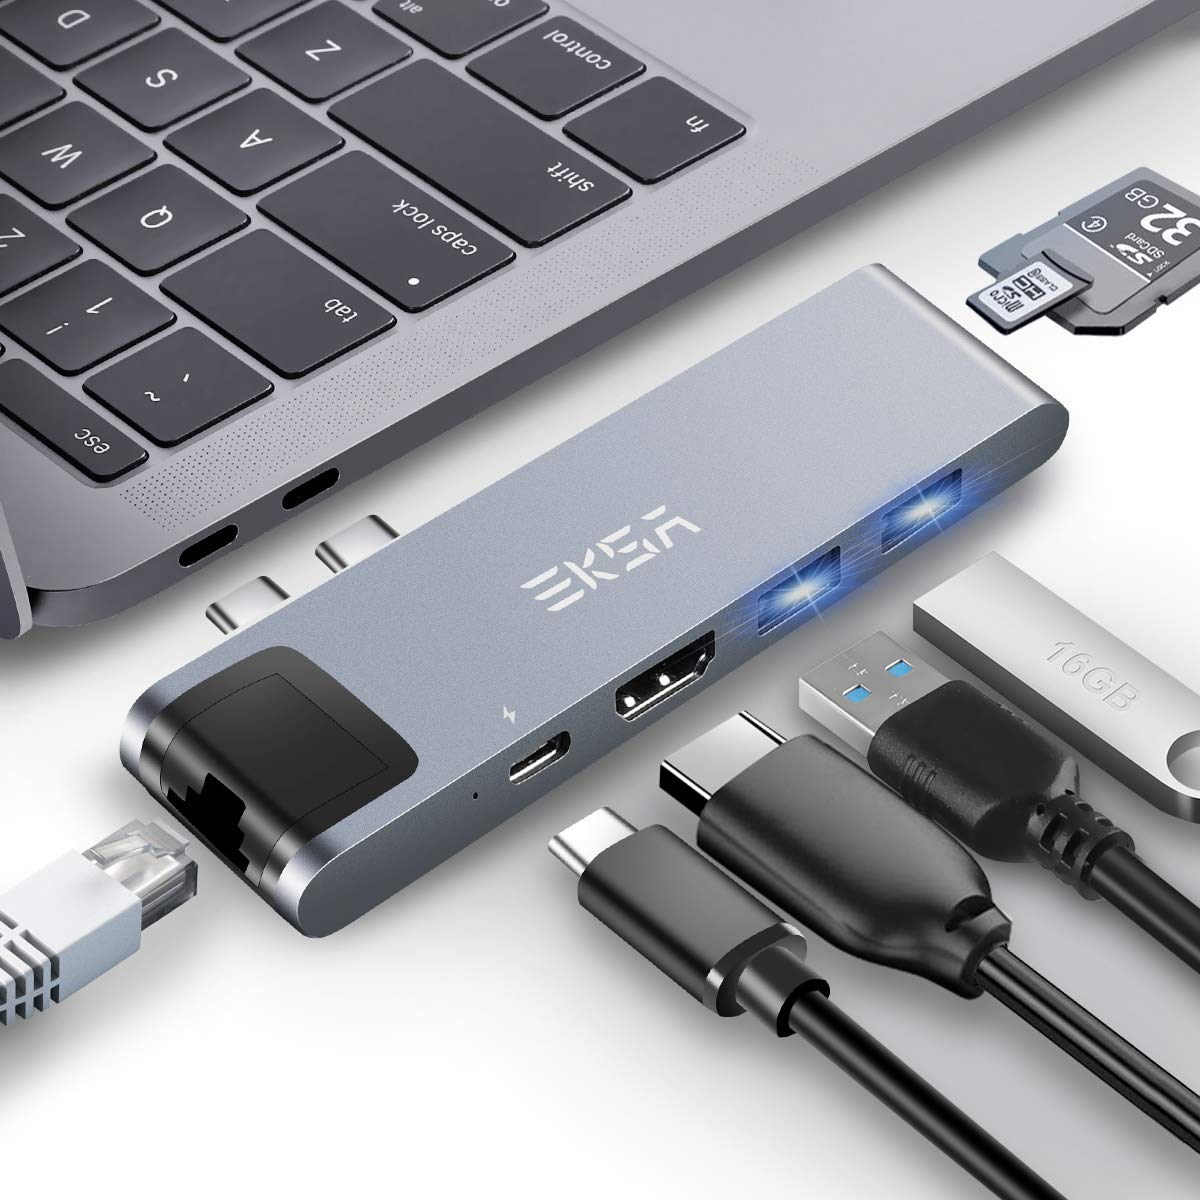 Thunderbolt 3 hub, EKSA 7 in 1 Dual USB C Hub for MacBook Pro 2016/2017/2018 13'' and 15'', MacBook Air 2018 Adapter with 4K USB C to HDMI, 100W Power Delivery, Ethernet Port,2xUSB3.0,SD/TF Card Reader by EKSA